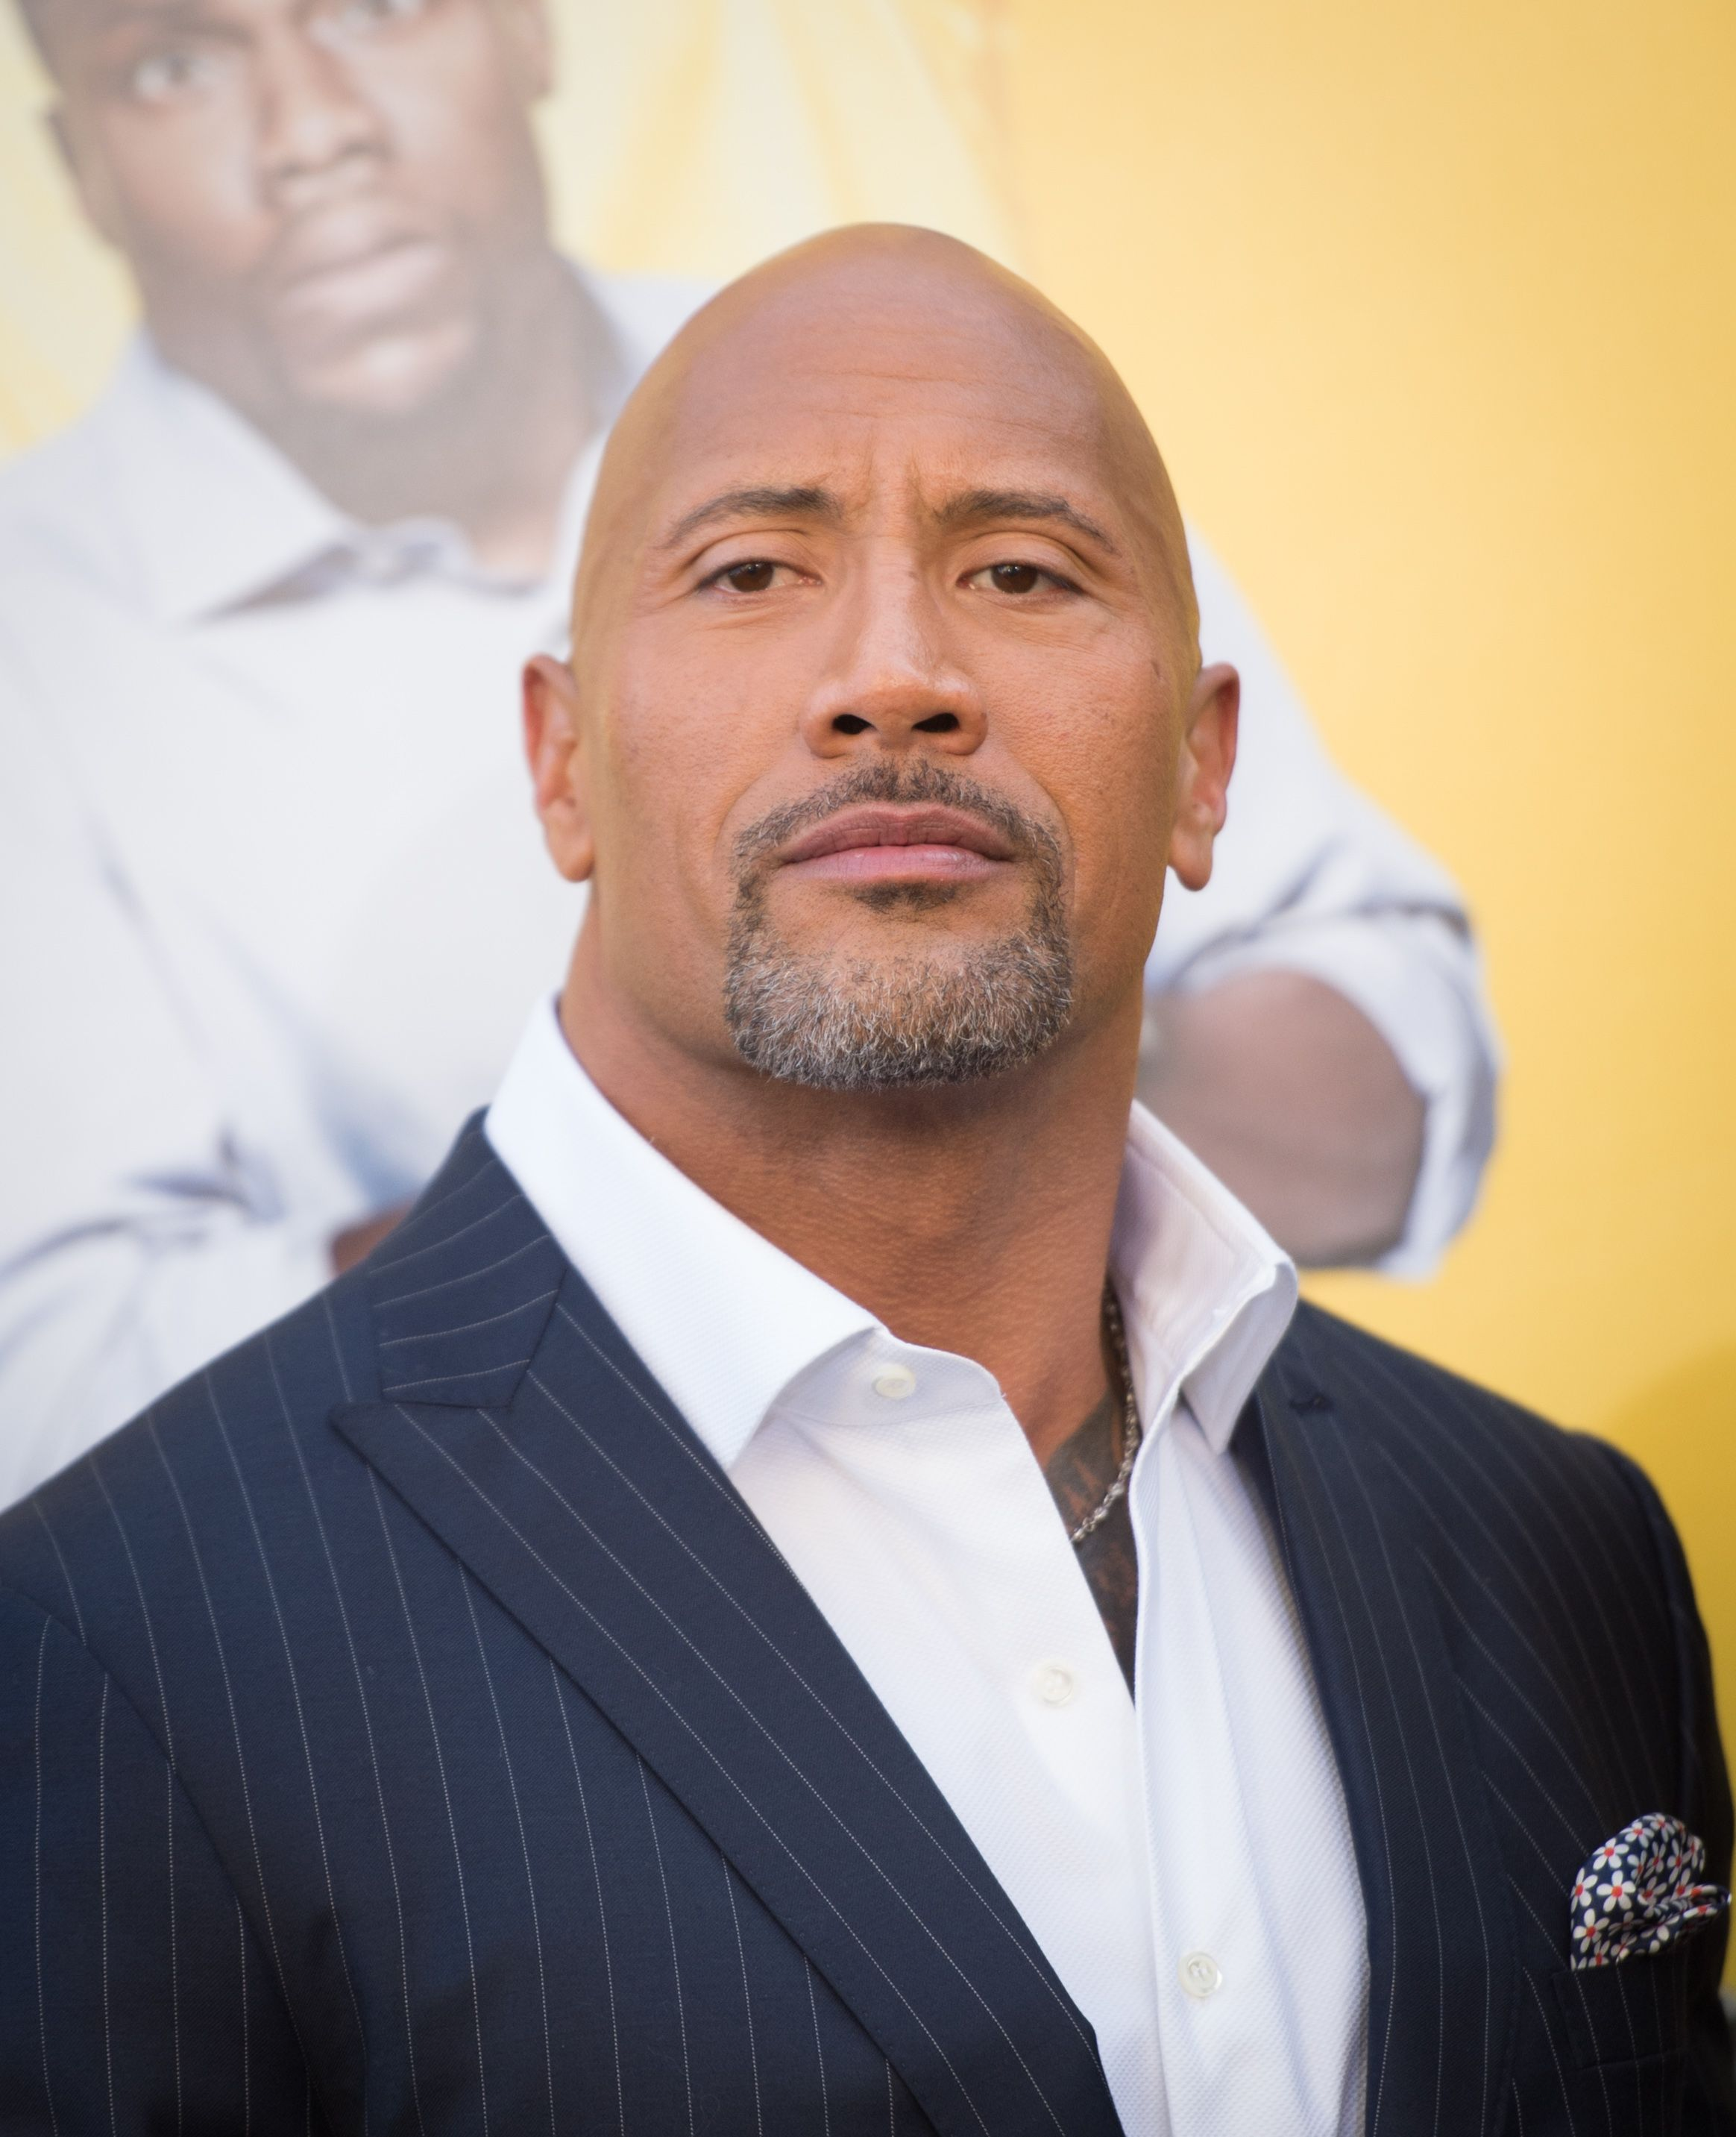 """Actor Dwayne Johnson at the premiere of Warner Bros. Pictures' """"Central Intelligence"""" at Westwood Village Theatre on June 10, 2016 in Westwood, California 